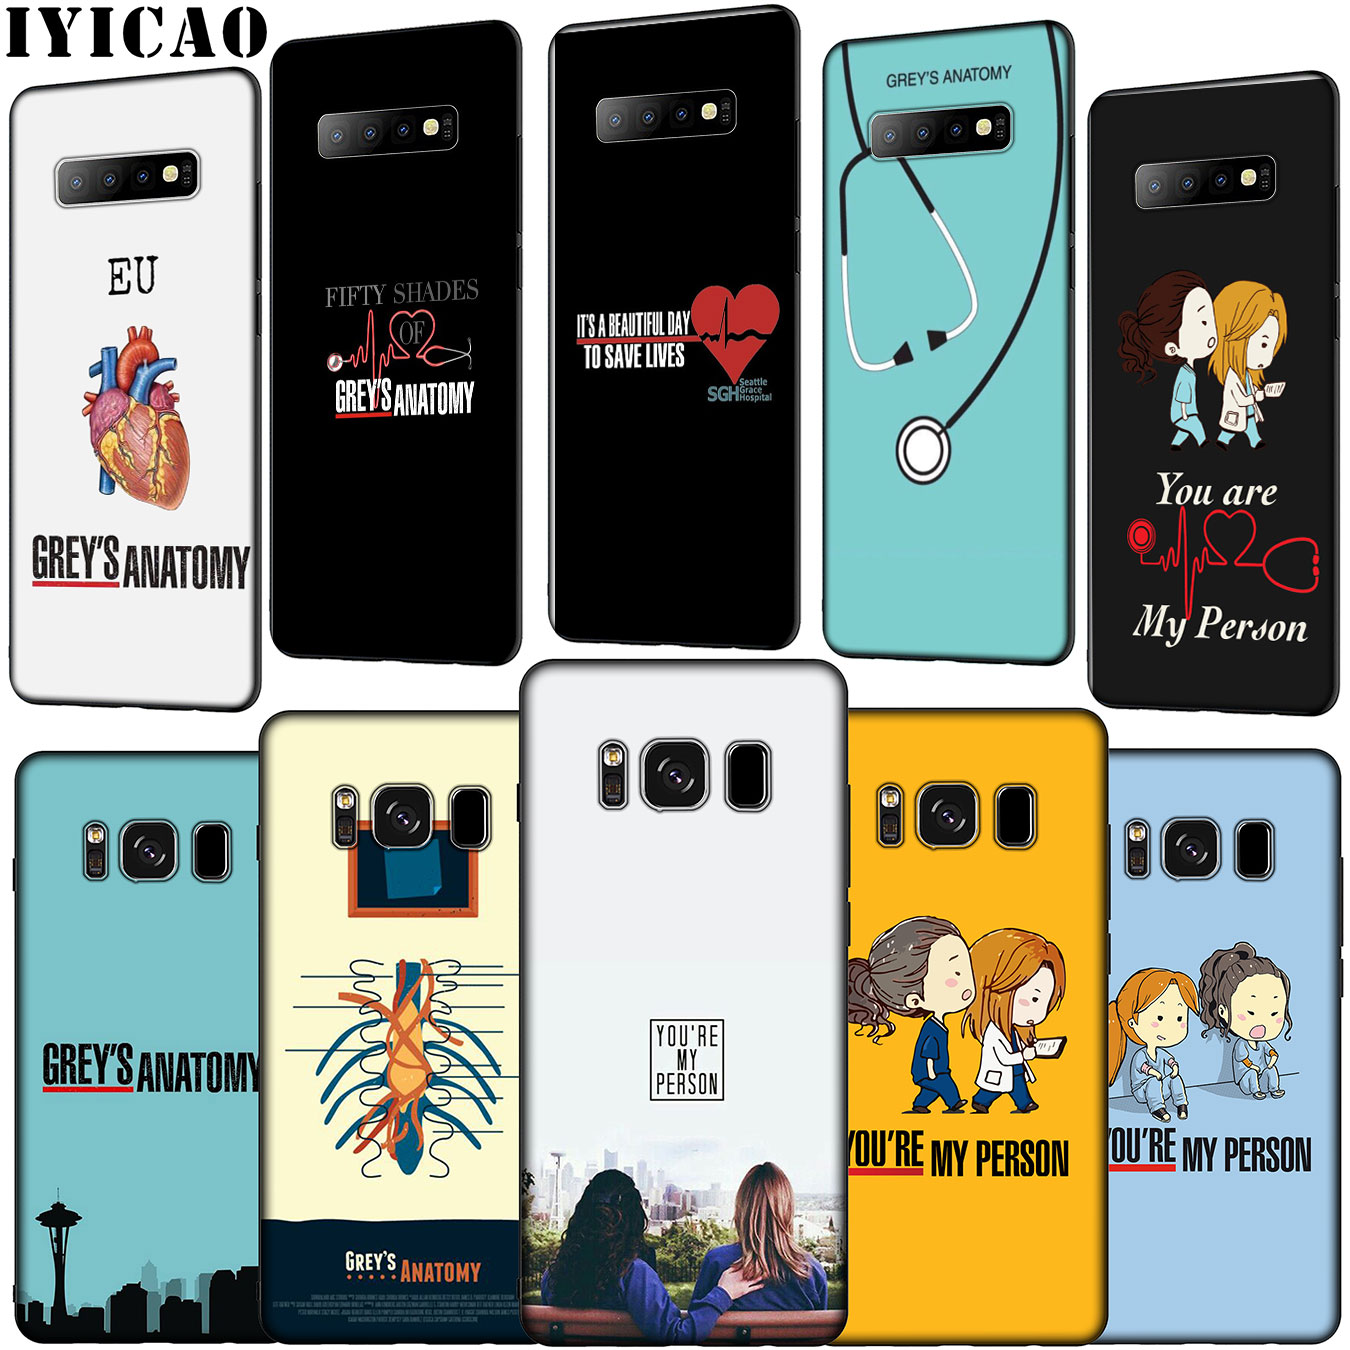 IYICAO <font><b>Greys</b></font> <font><b>Grey's</b></font> <font><b>Anatomy</b></font> Soft Silicone Phone <font><b>Case</b></font> for Samsung Galaxy S10 E S9 S8 Plus S6 S7 Edge S10e TPU Black Cover image